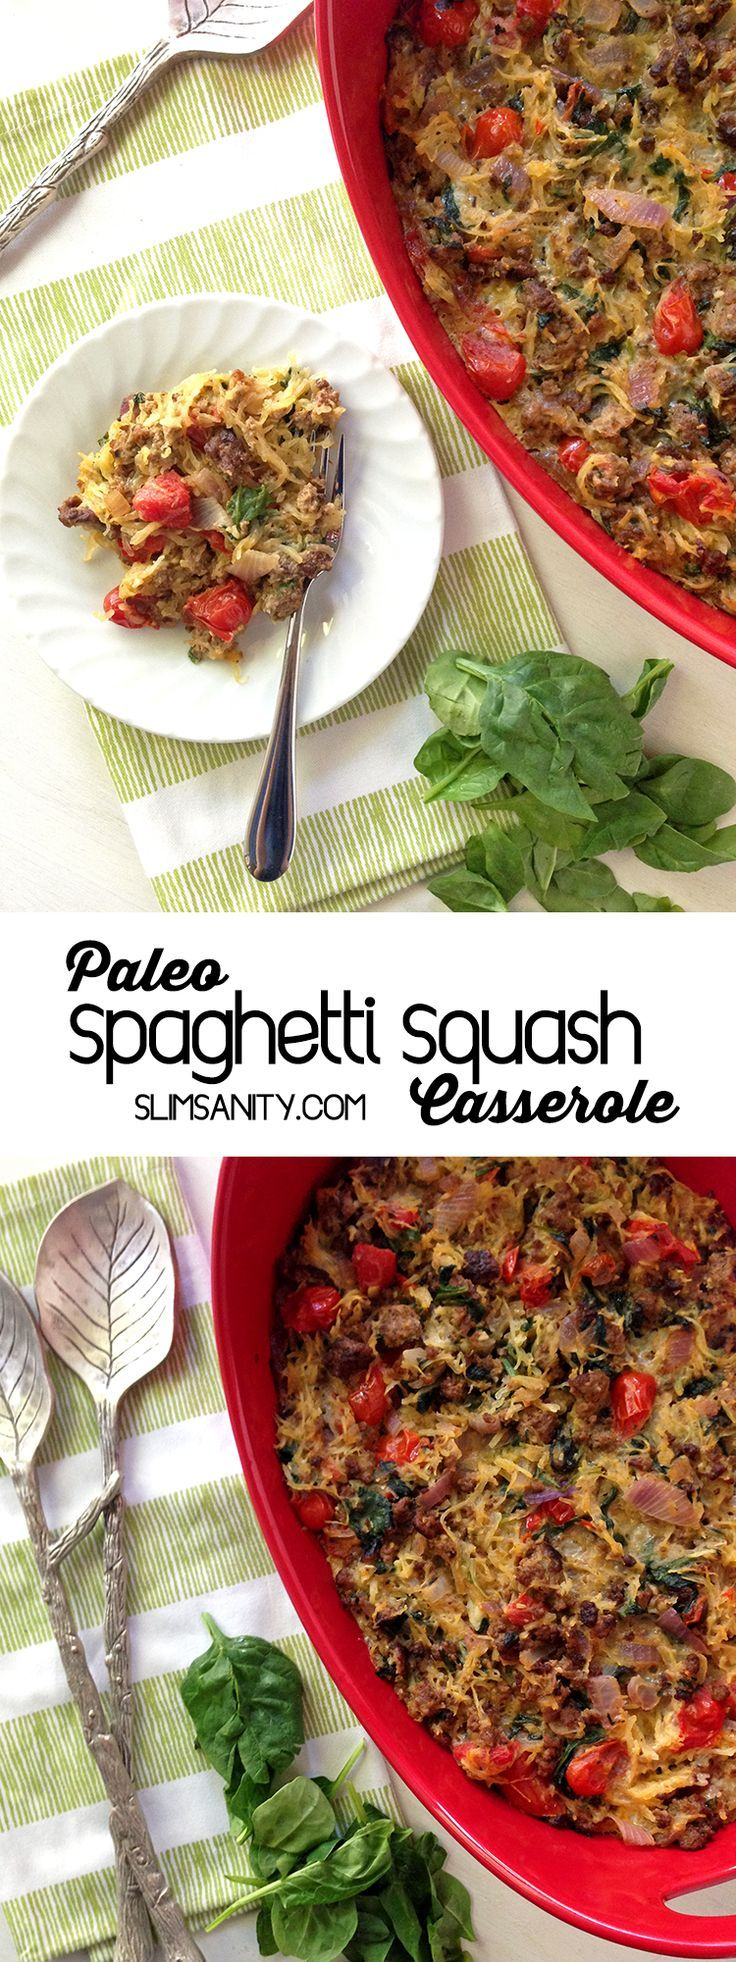 Paleo Spaghetti Squash Casserole - healthy and easy dinner recipe!